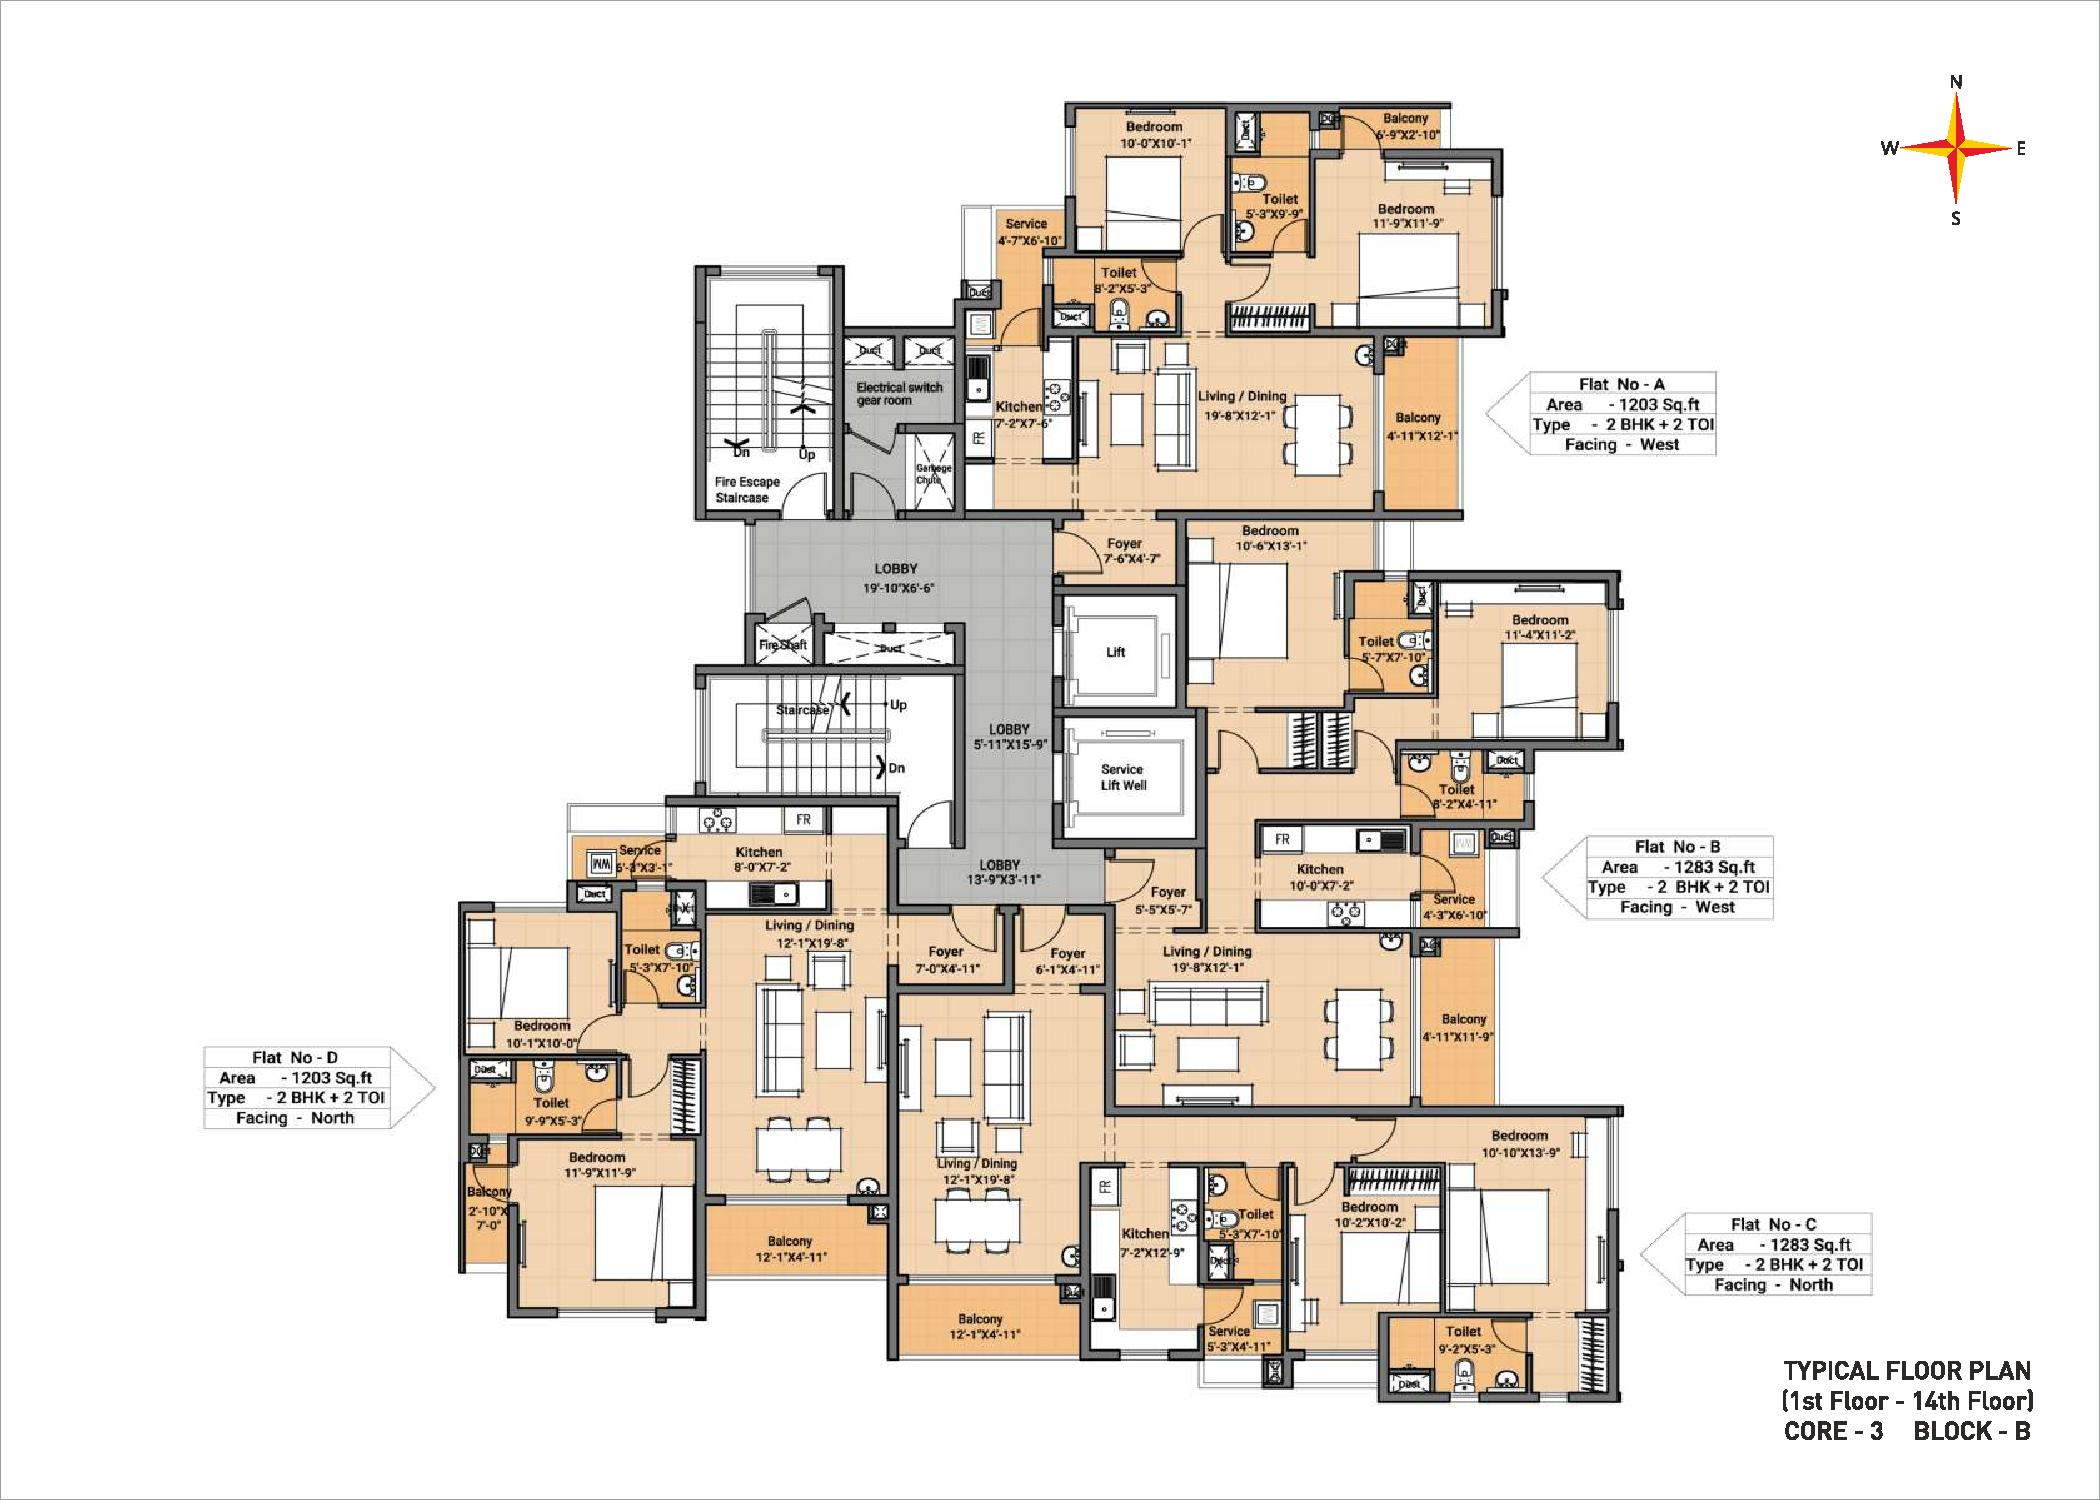 Typical floor plan - Block B Core 3(1-14th floor)